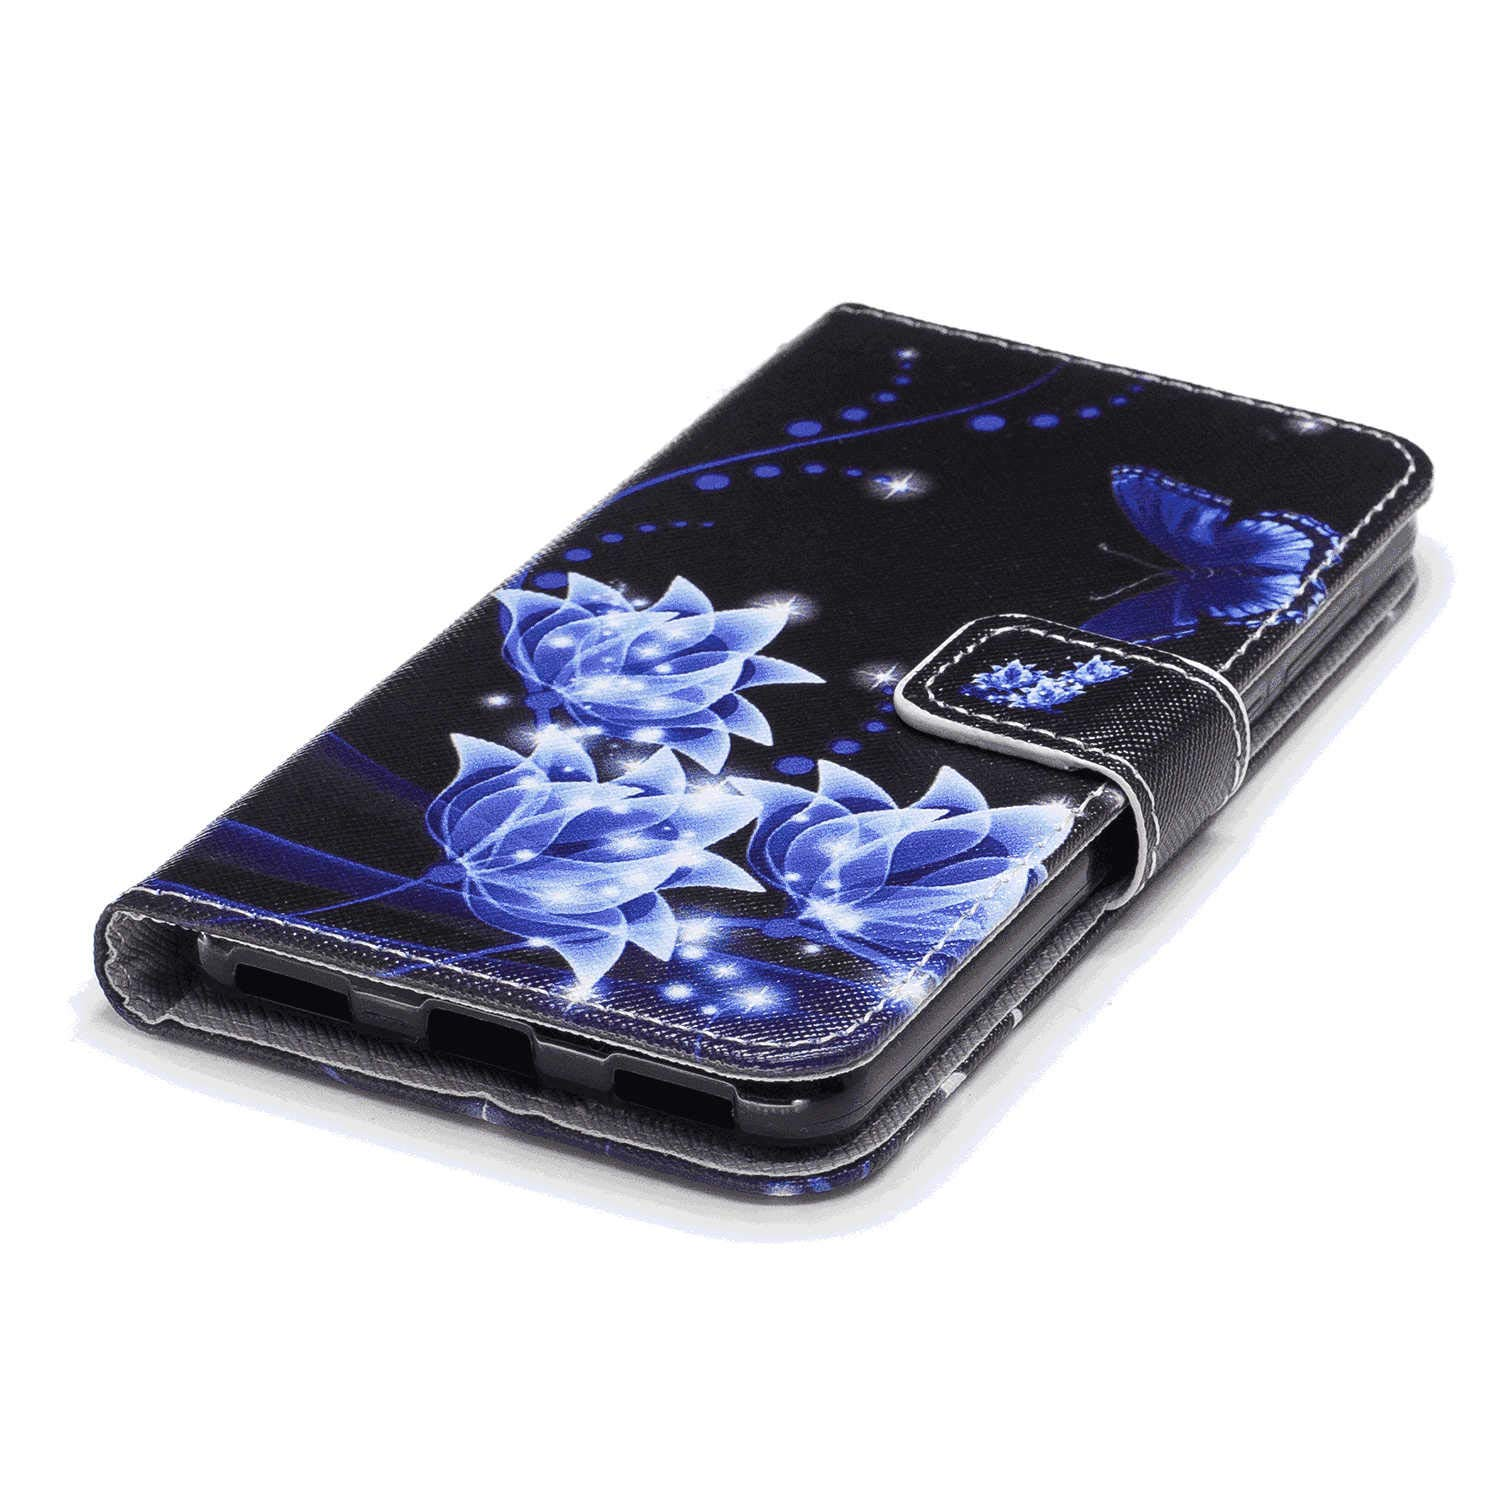 Cover for Samsung Galaxy S8 Leather Kickstand Cell Phone Cover Luxury Business Card Holders with Free Waterproof-Bag White10 Samsung Galaxy S8 Flip Case